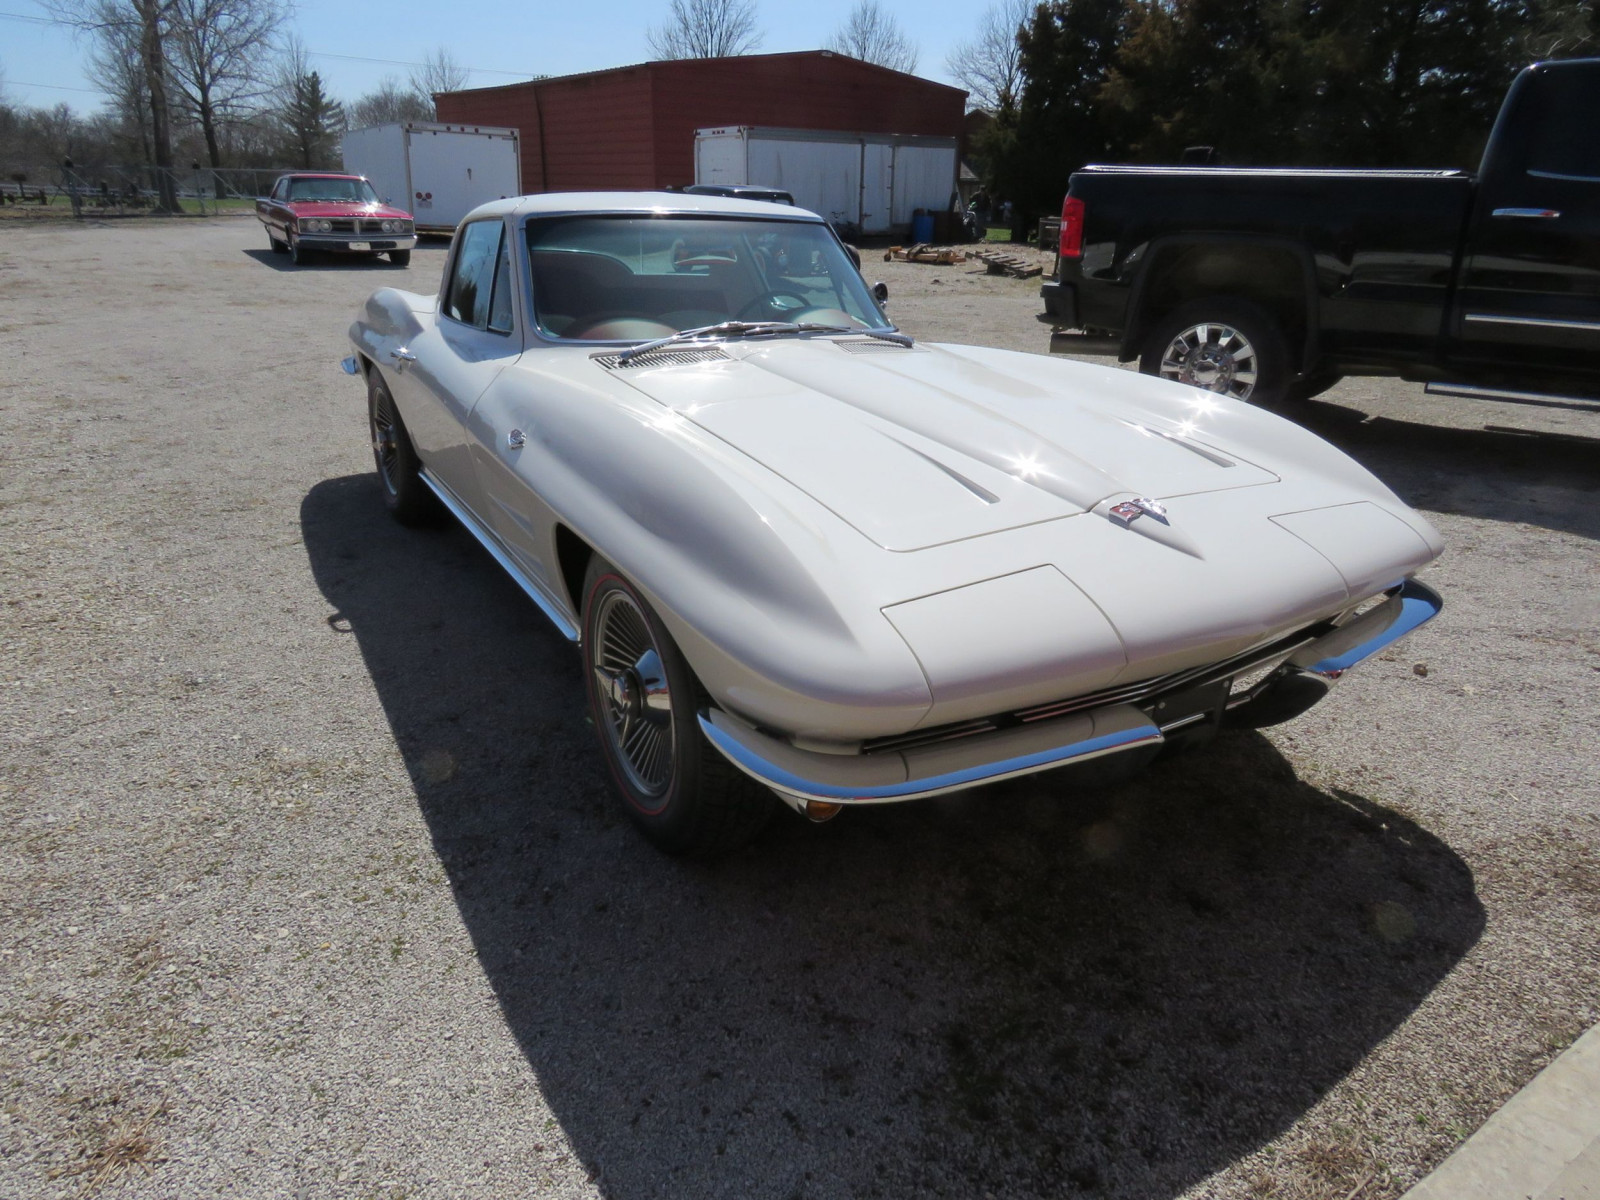 Beautiful 1964 Chevrolet Corvette Sting Ray Coupe - Image 3